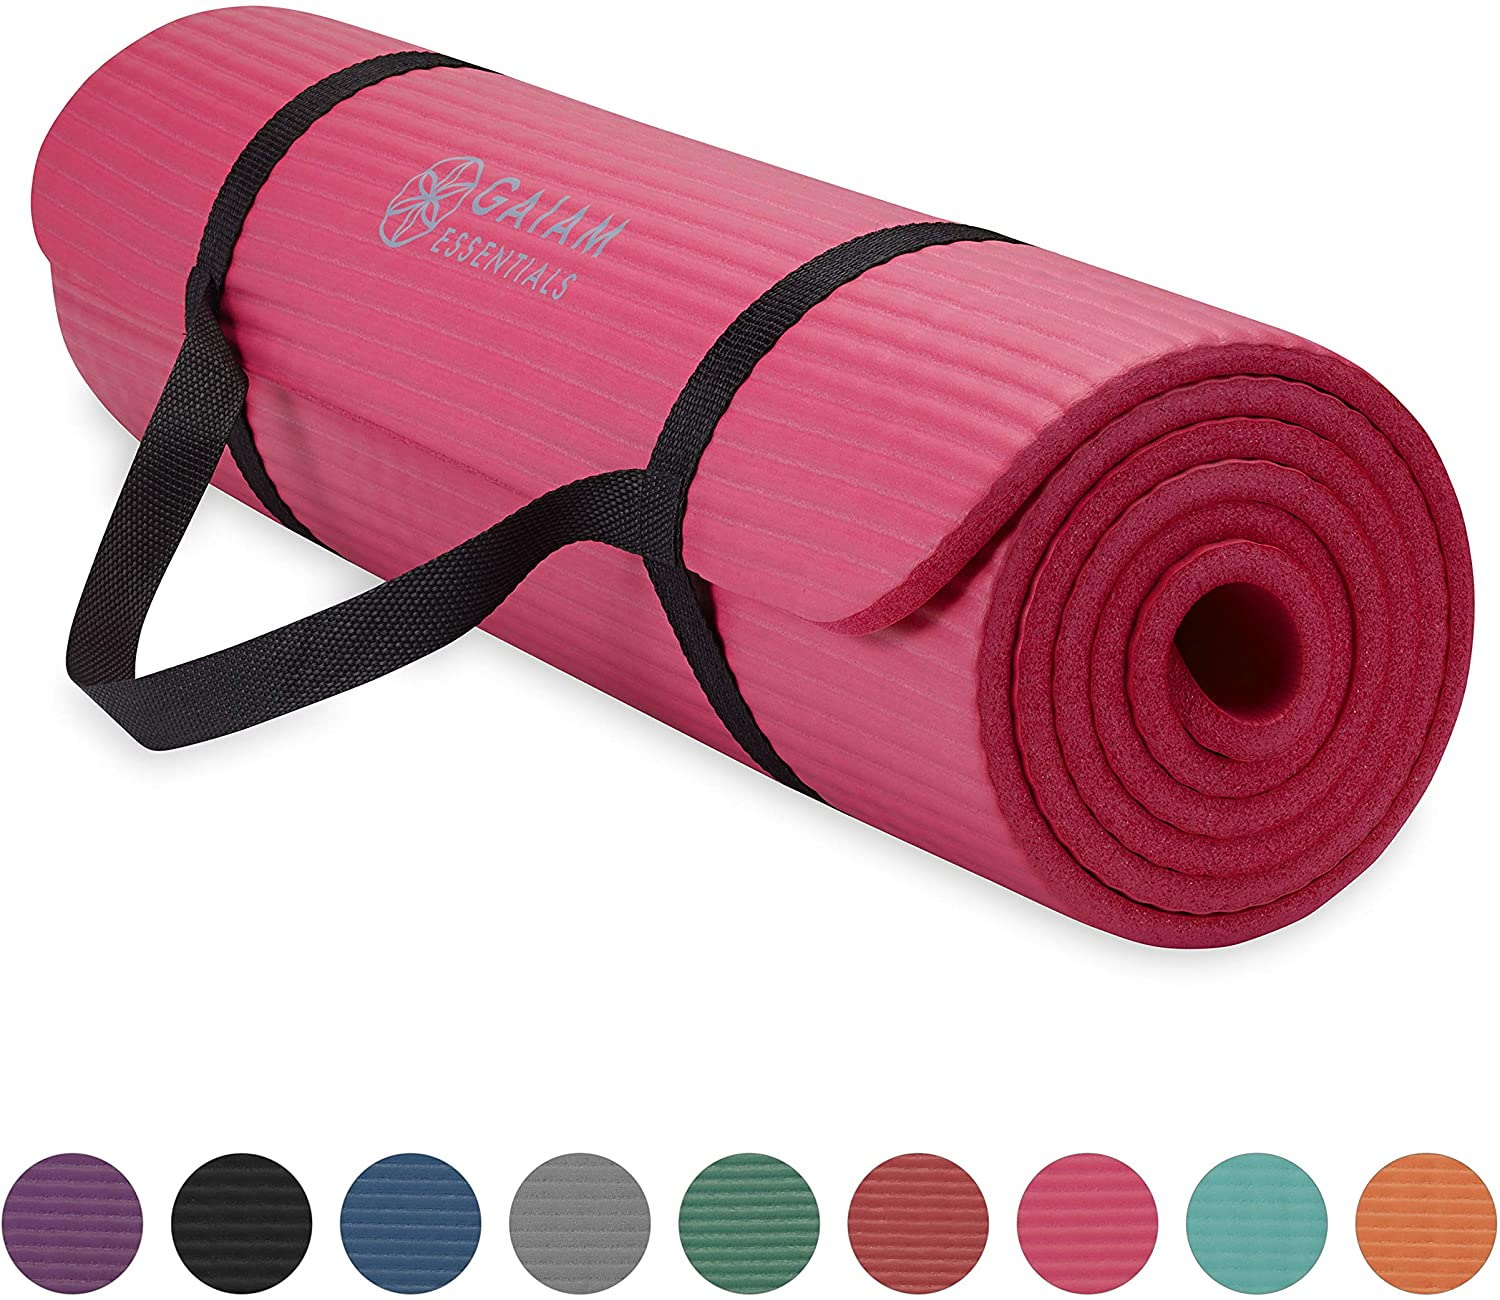 72L x 24W x  1//4 Inch Thick Gaiam Essentials Premium Yoga Mat with Yoga Mat Carrier Sling